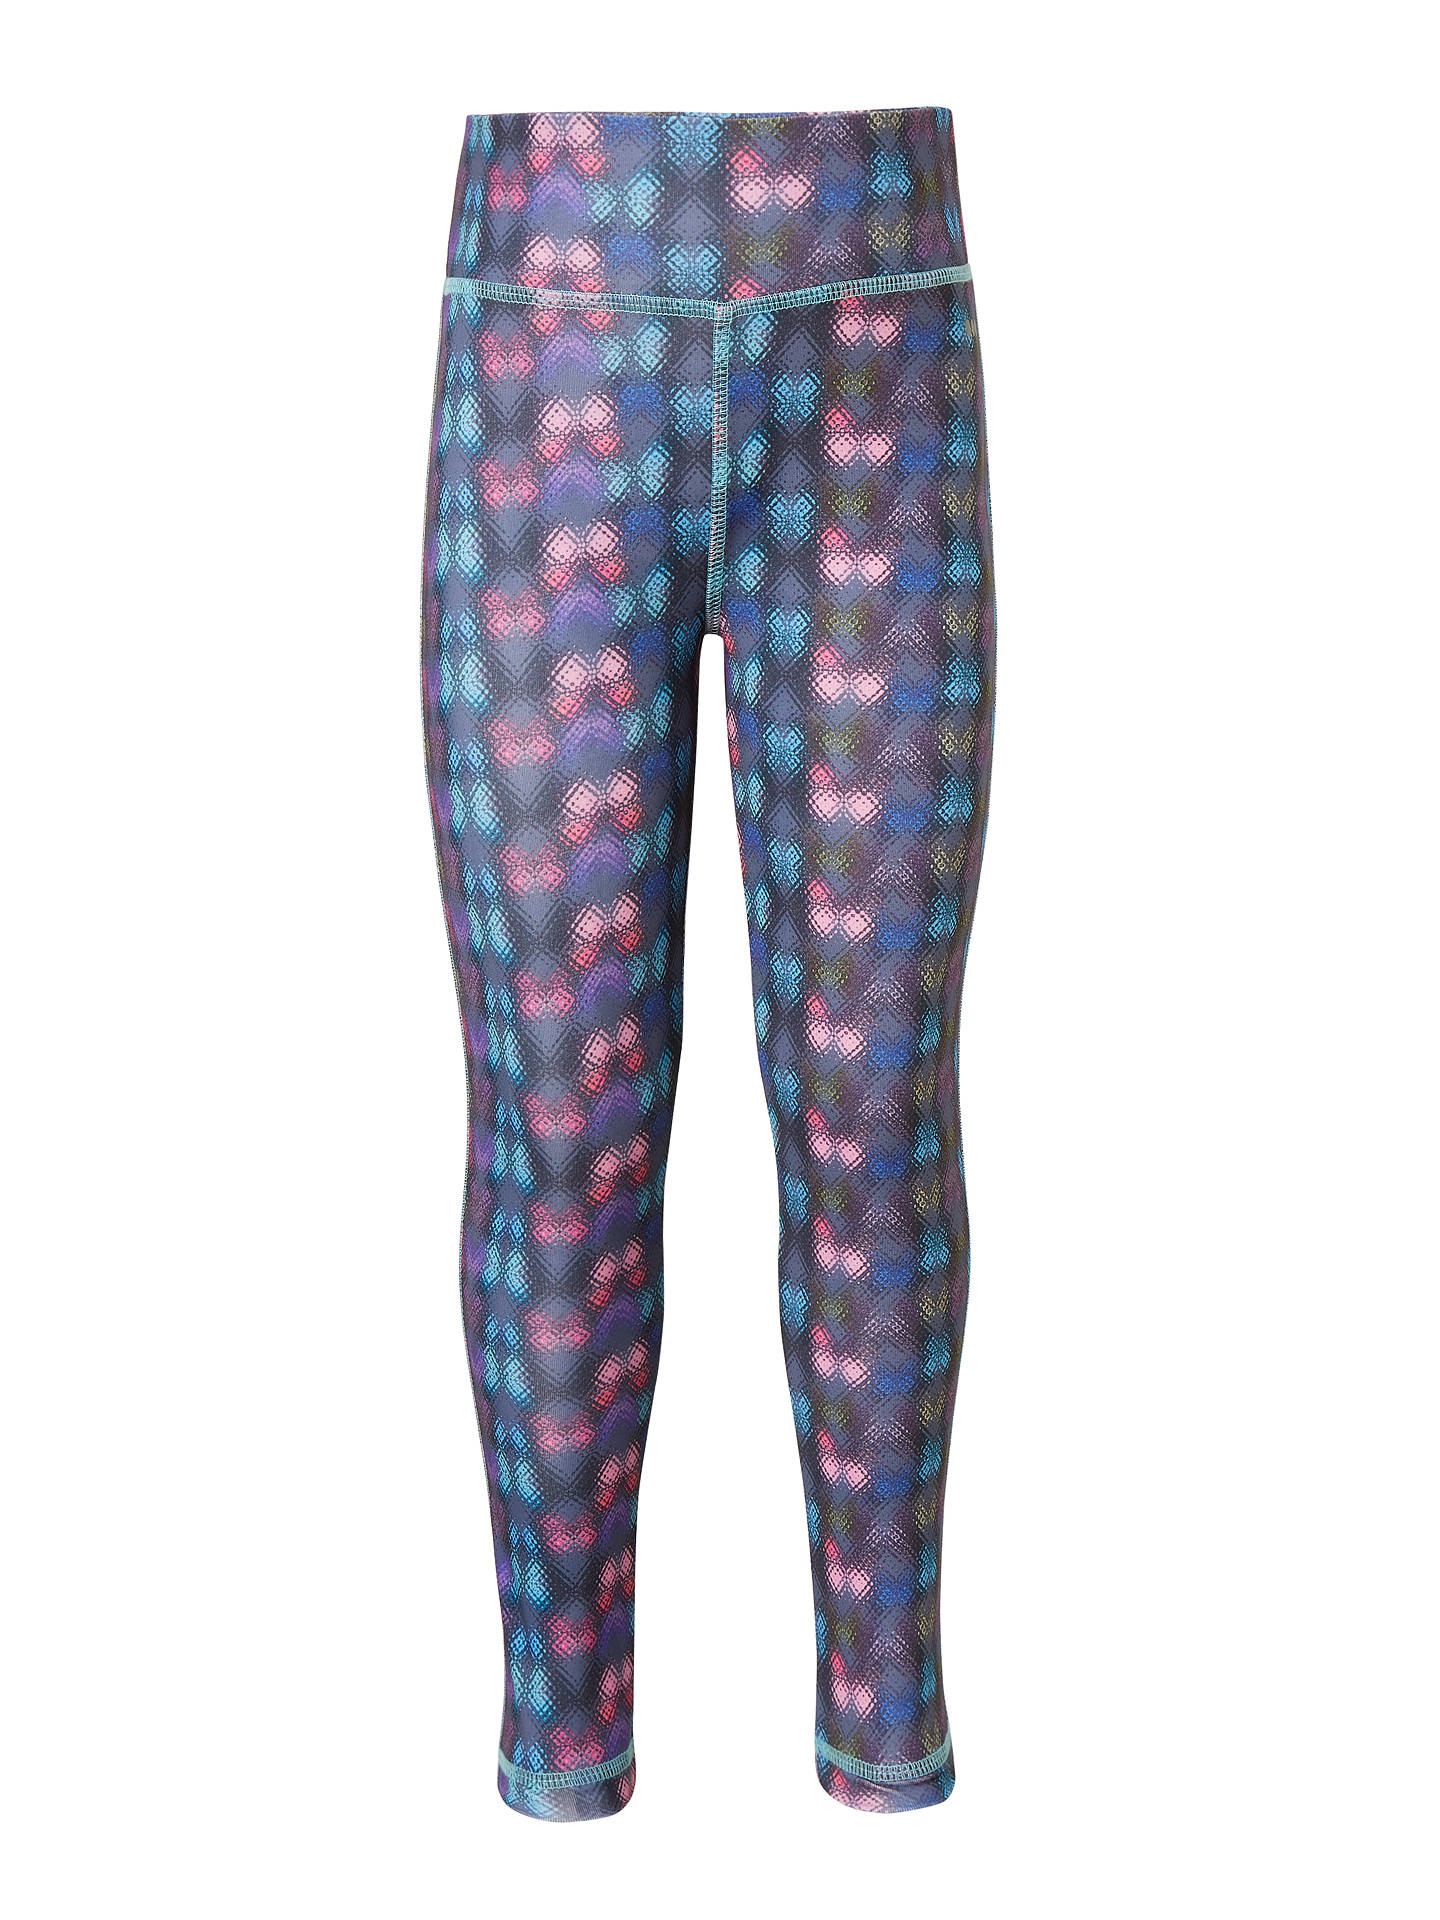 Buy John Lewis & Partners Girls' Geo Multi Sports Leggings, Multi, 3 years Online at johnlewis.com